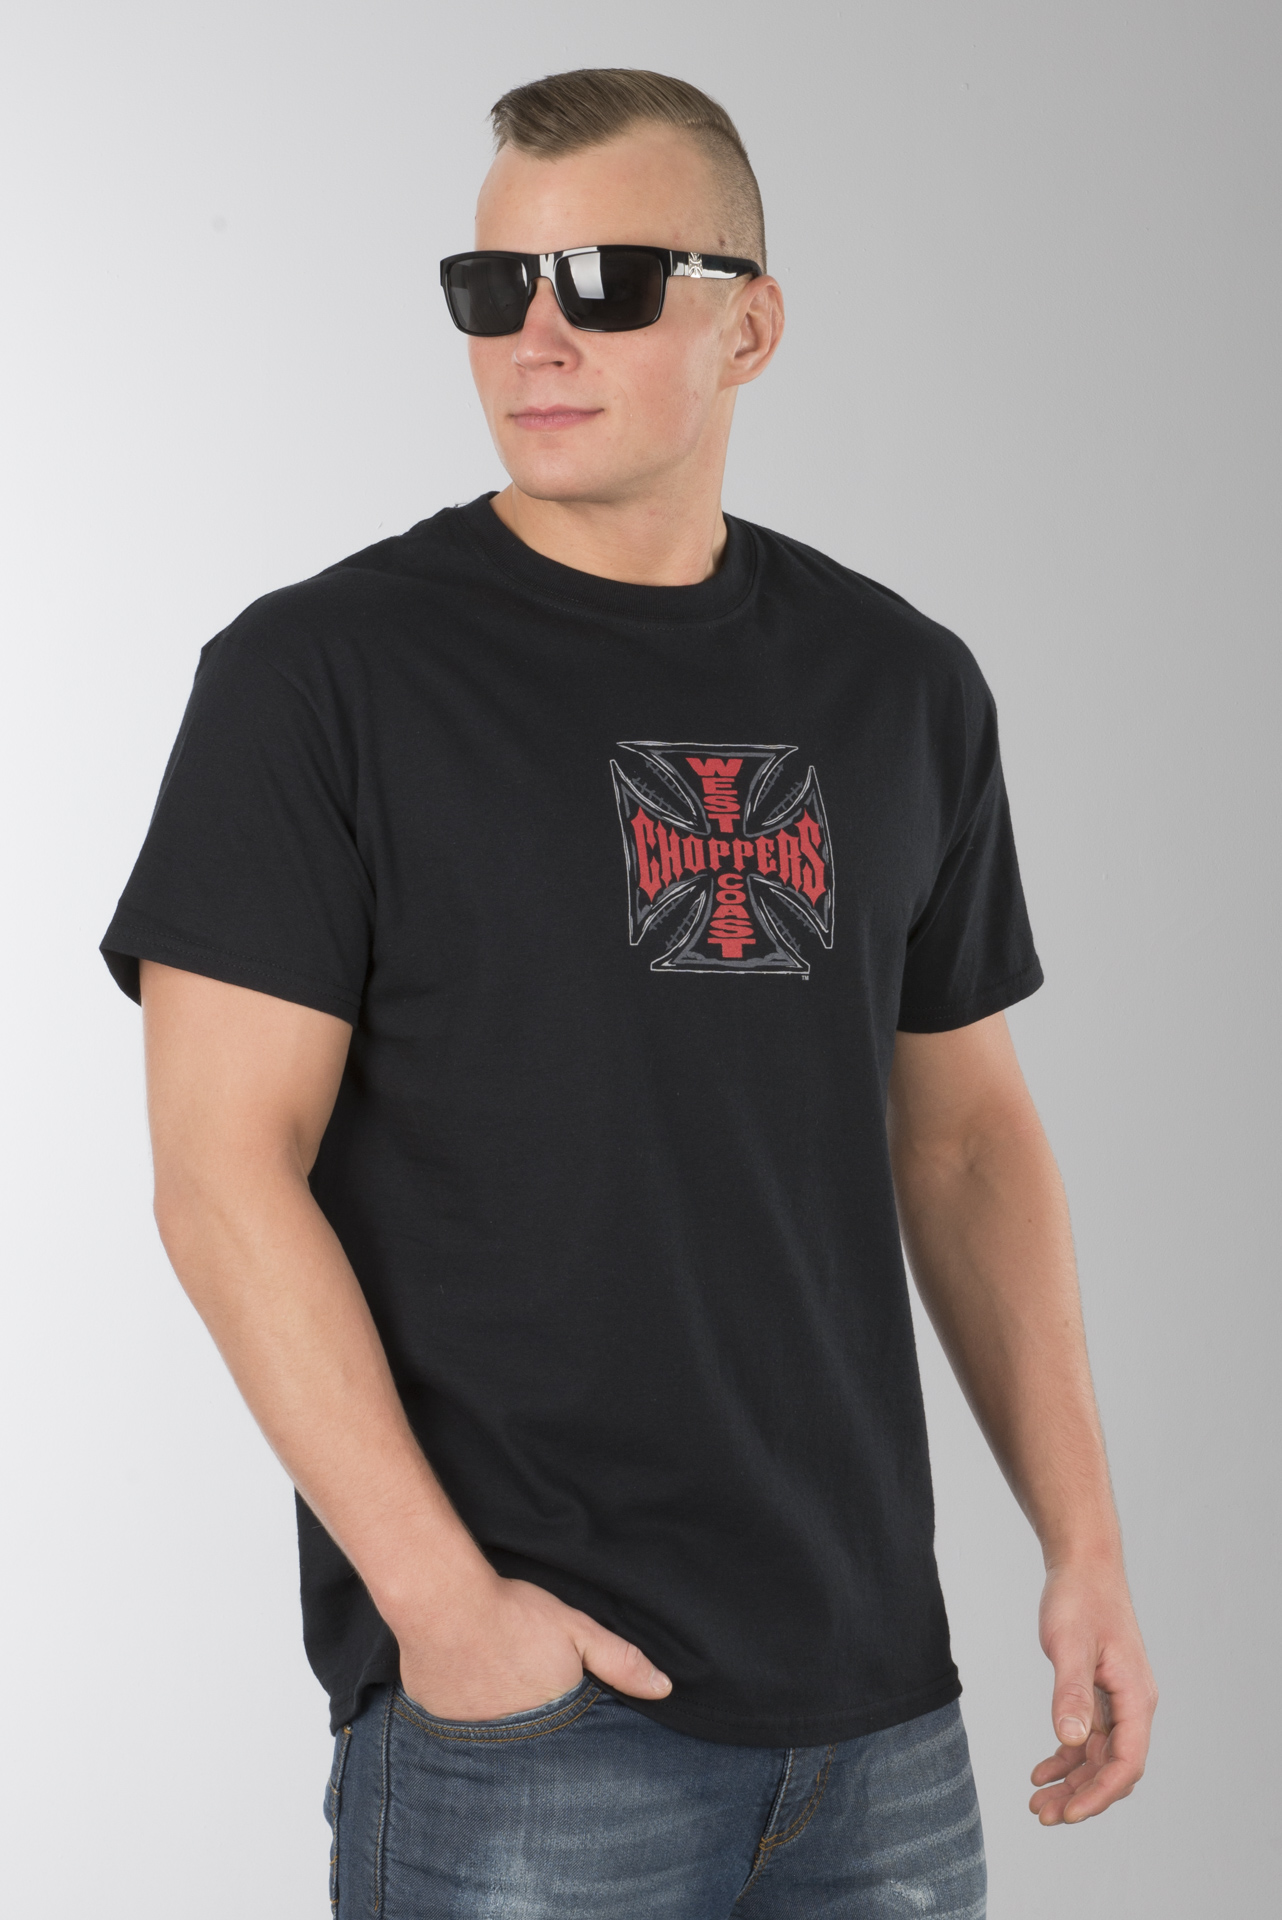 West Coast Choppers T-Shirt F*** You